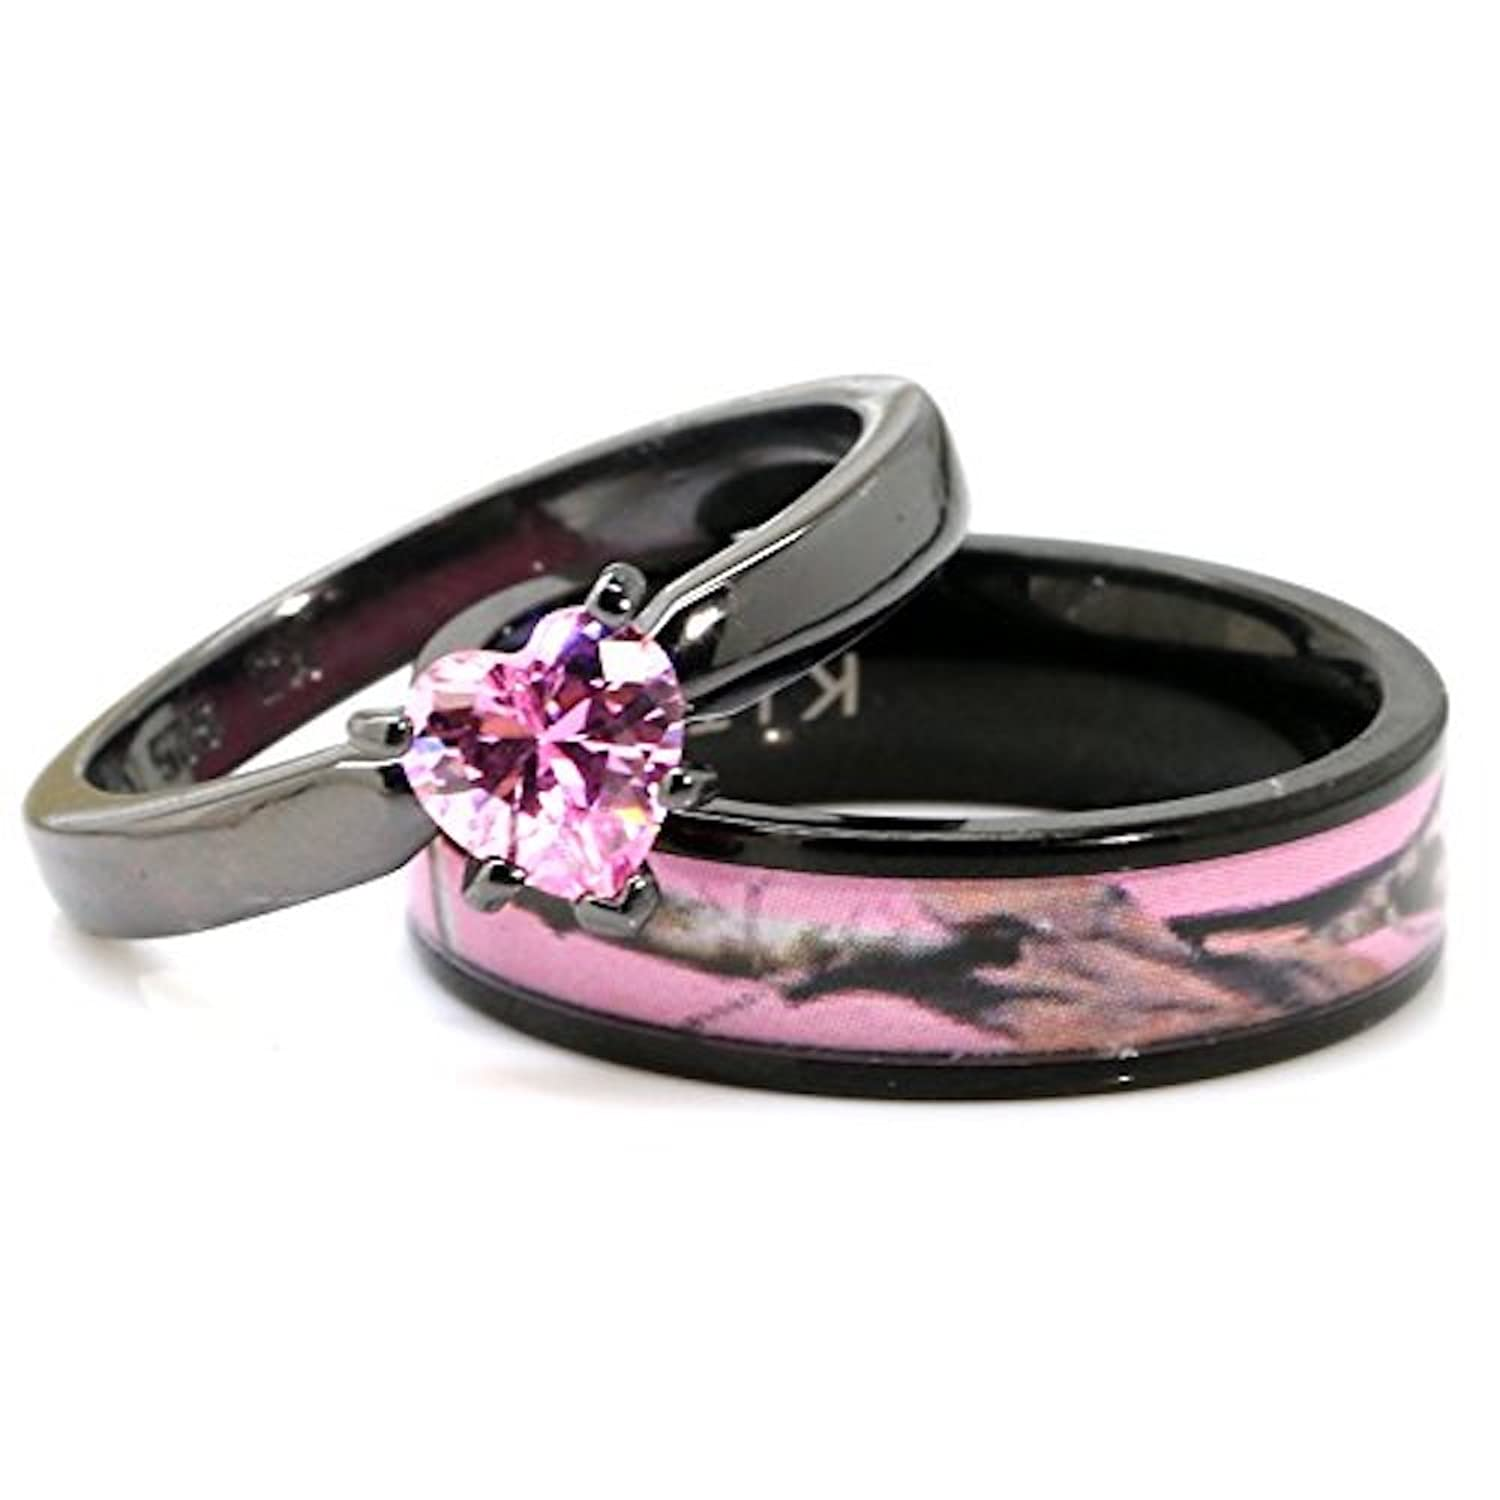 amazoncom black plated pink camo wedding ring set pink heart engagement rings hypoallergenic titanium and stainless steel jewelry - Black And Pink Wedding Ring Sets